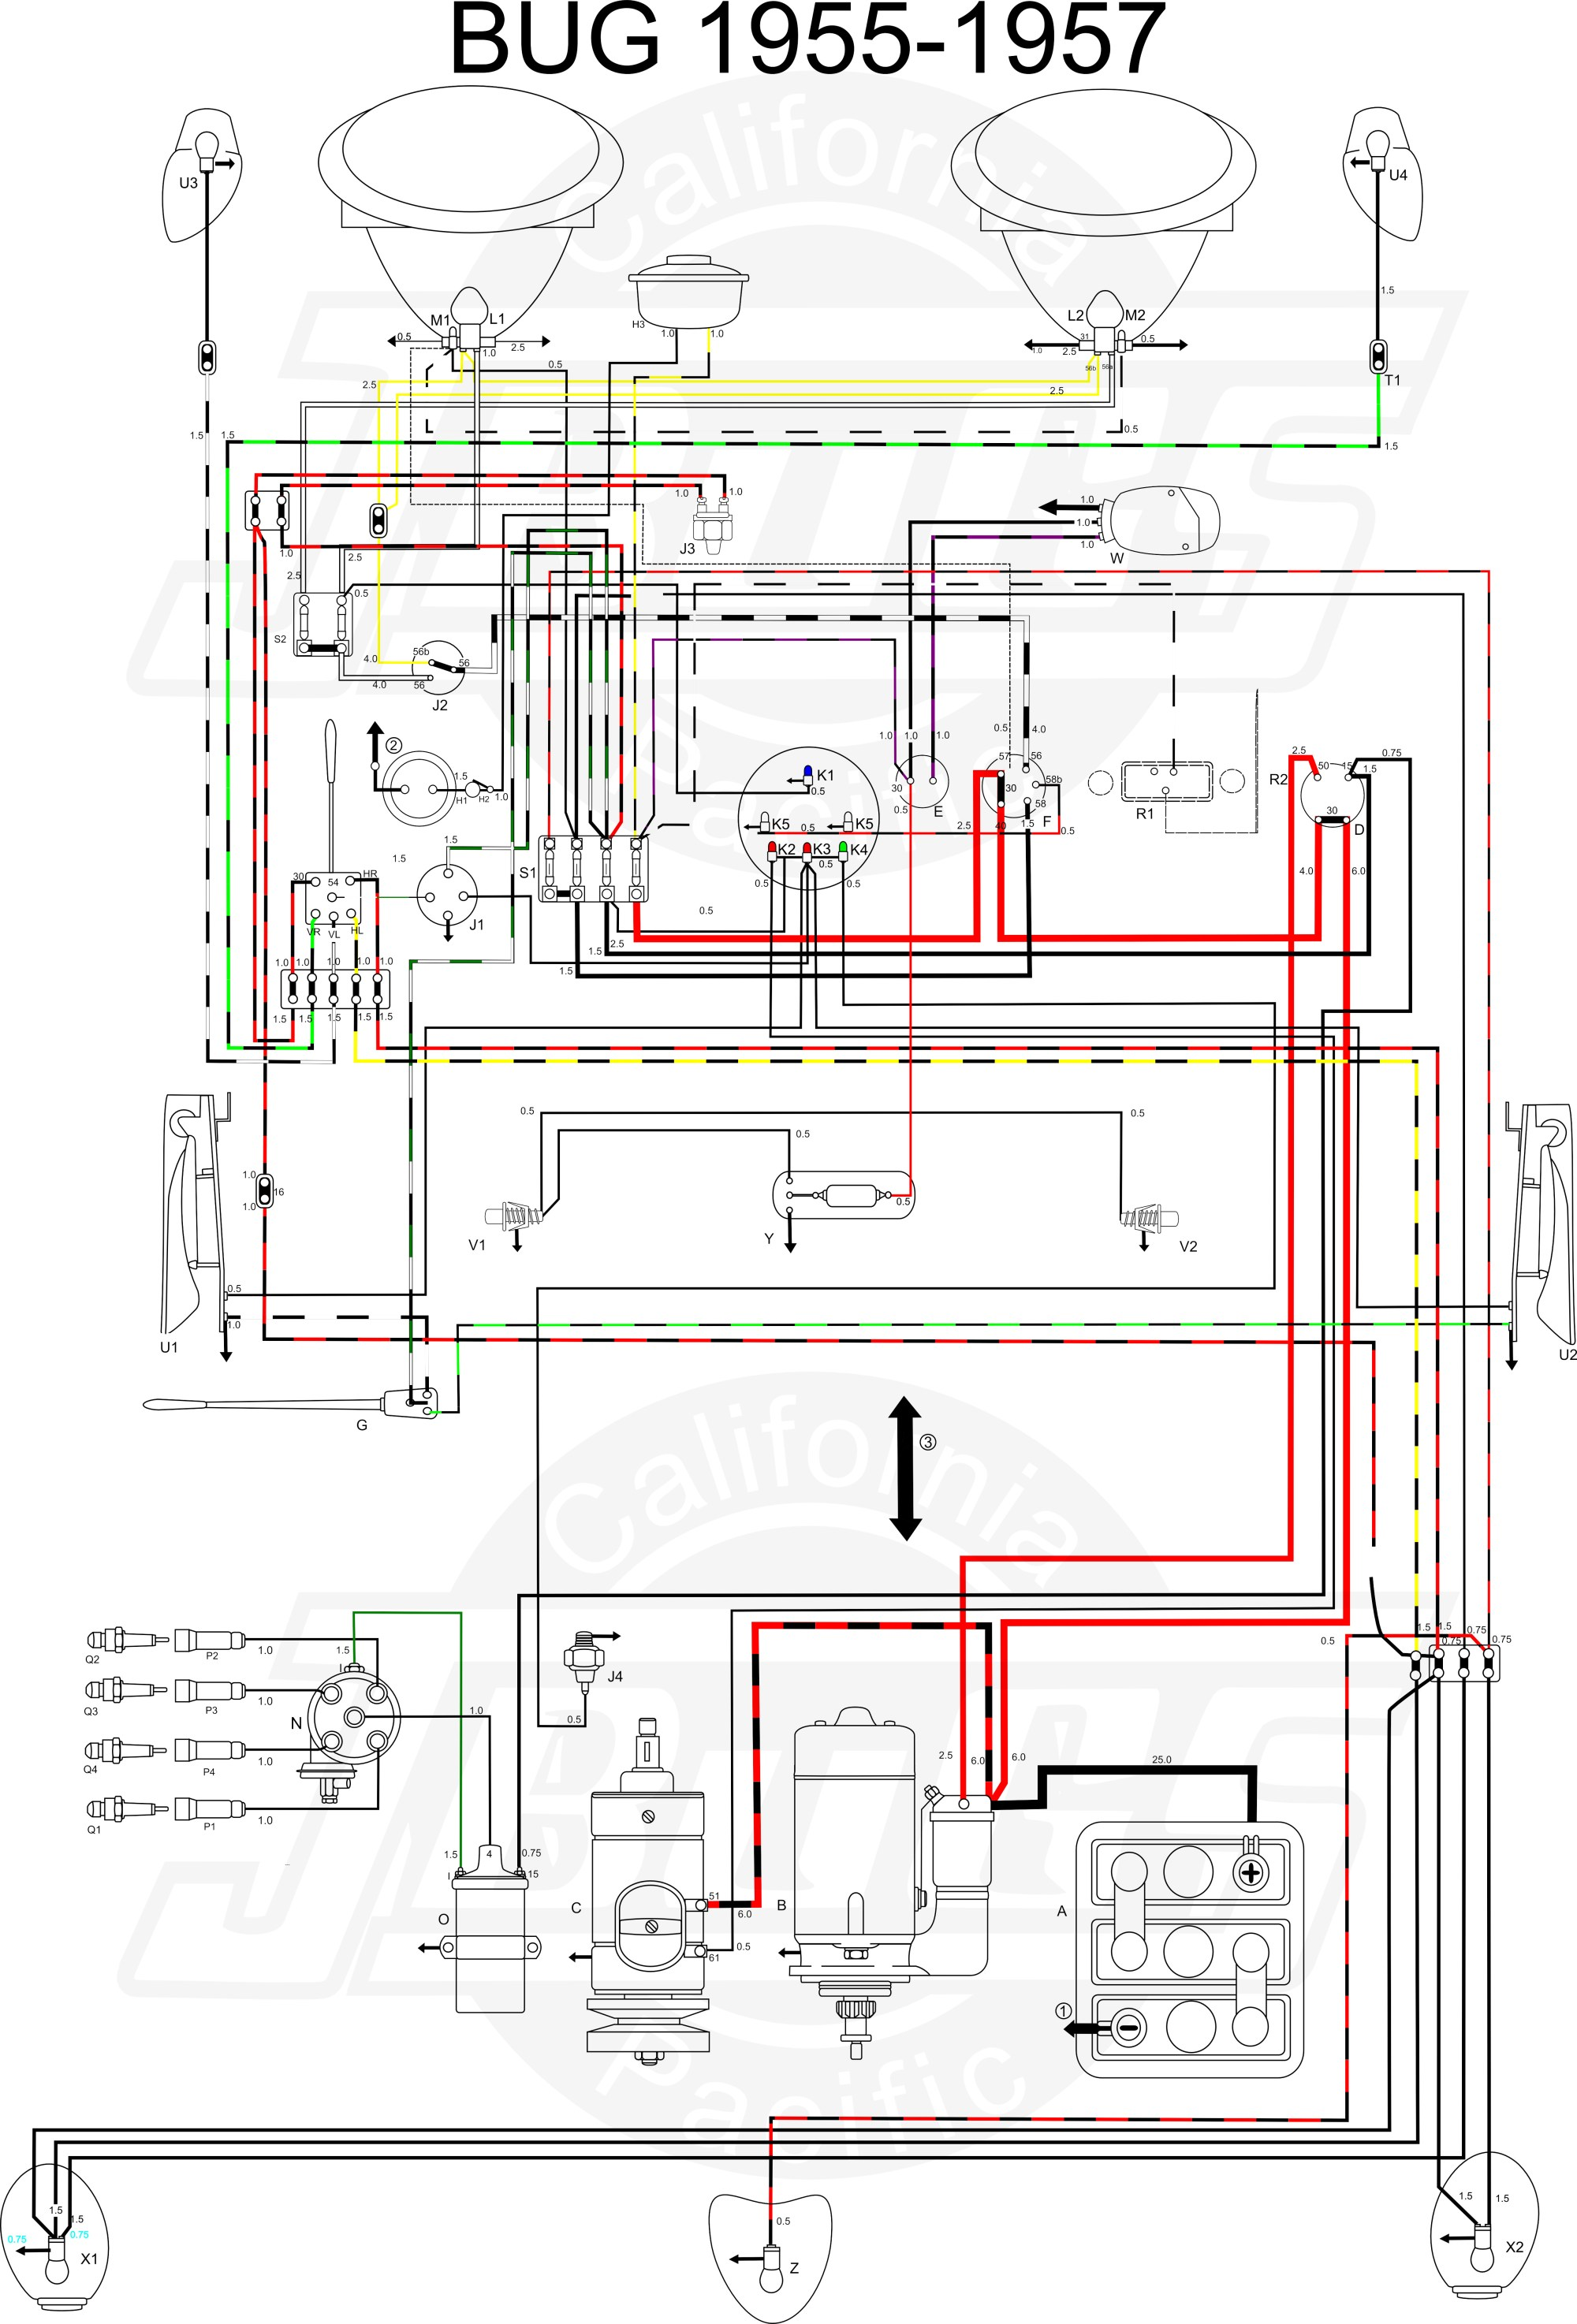 hight resolution of 74 beetle backup lights wiring harness wiring diagram img 74 beetle backup lights wiring harness